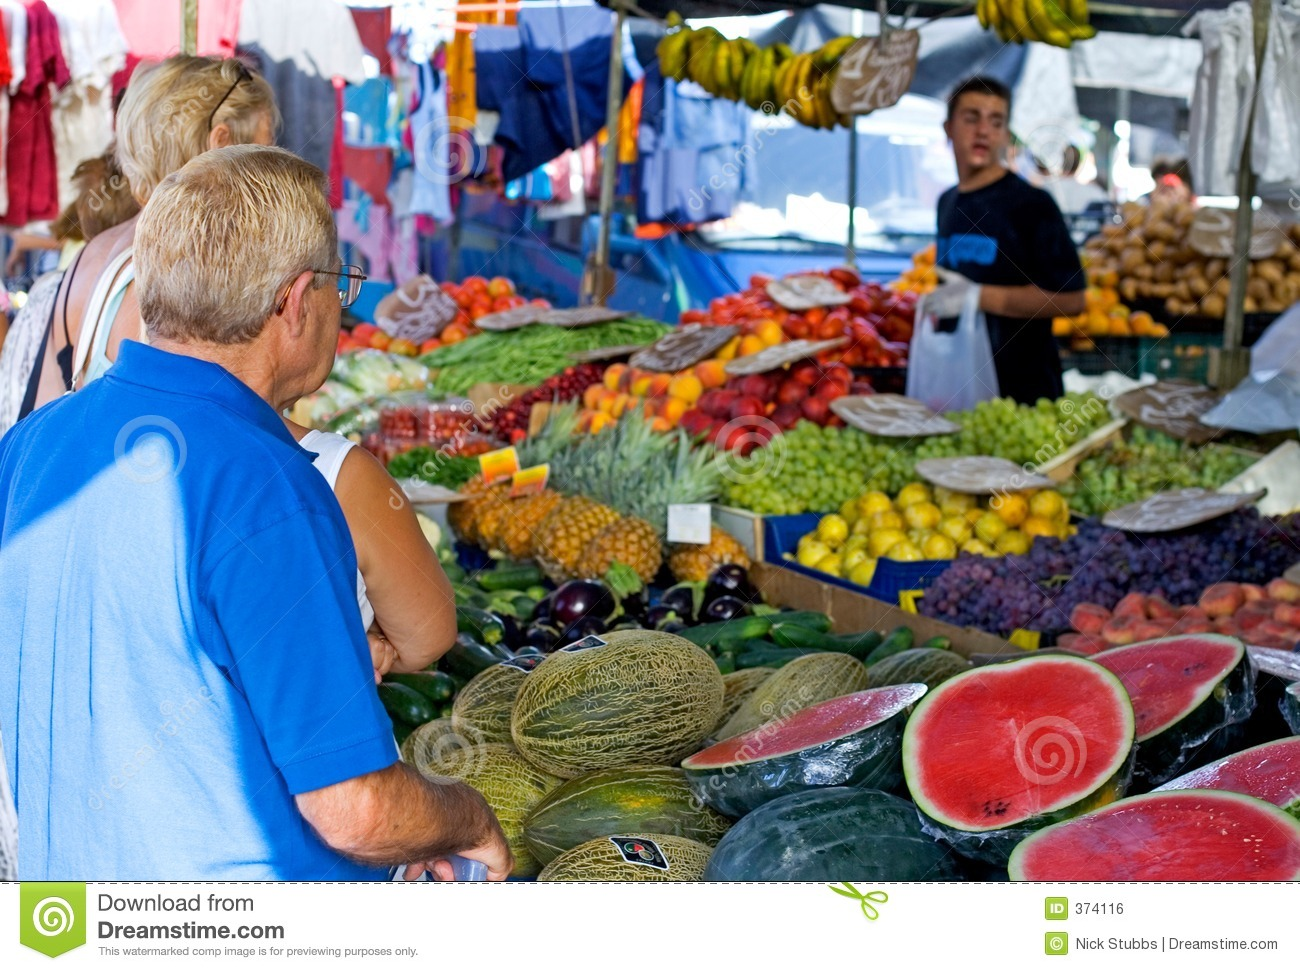 People shopping for Fruit and vegetables at market